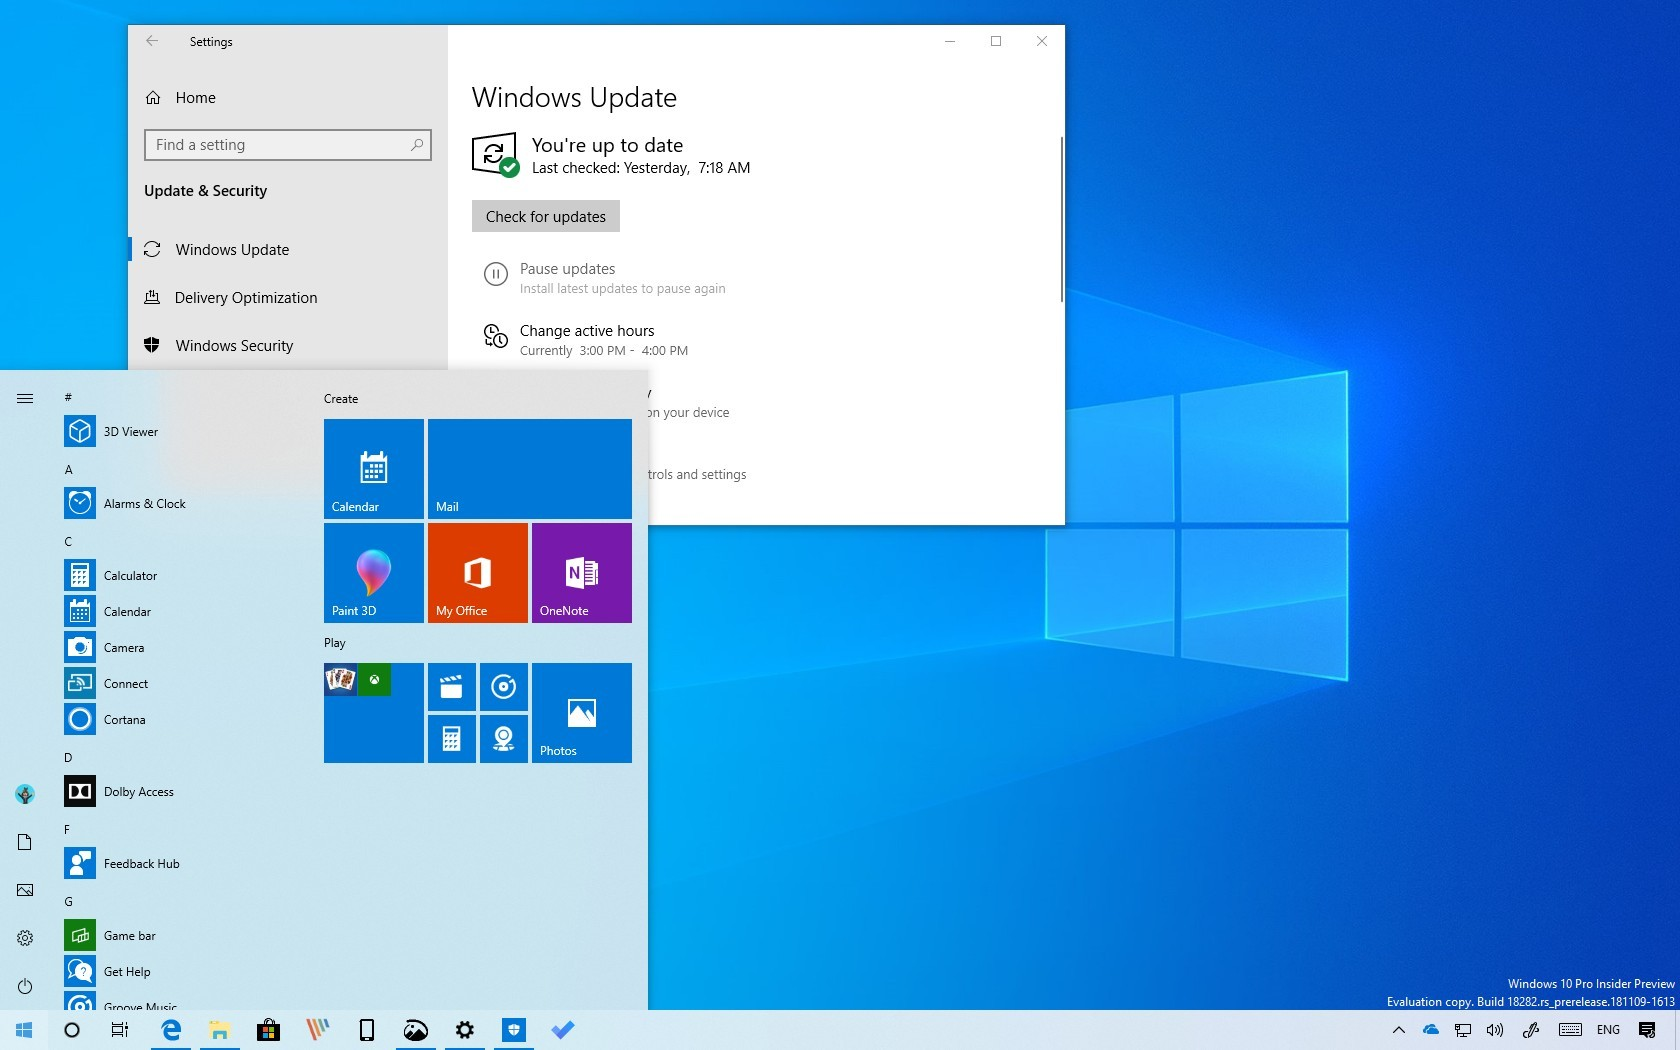 Technology Management Image: Windows 10 Version 1903, April 2019 Update: All The New